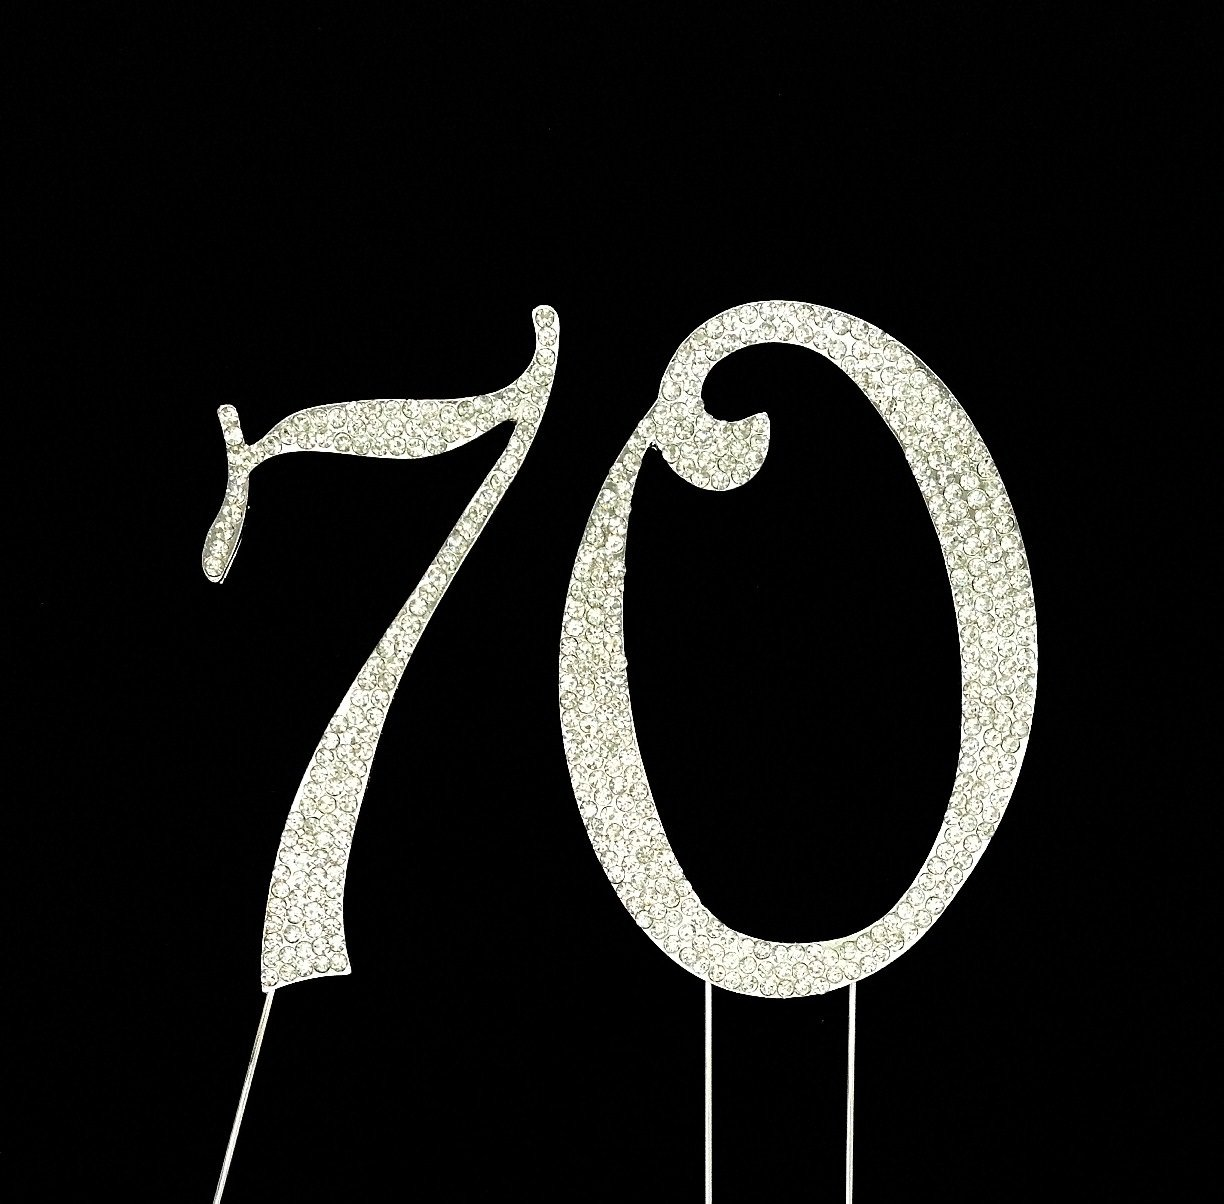 Amazon large 70th birthday wedding anniversary number cake amazon large 70th birthday wedding anniversary number cake topper with sparkling rhinestone crystals 4 12 tall cake decoration jewelry kitchen biocorpaavc